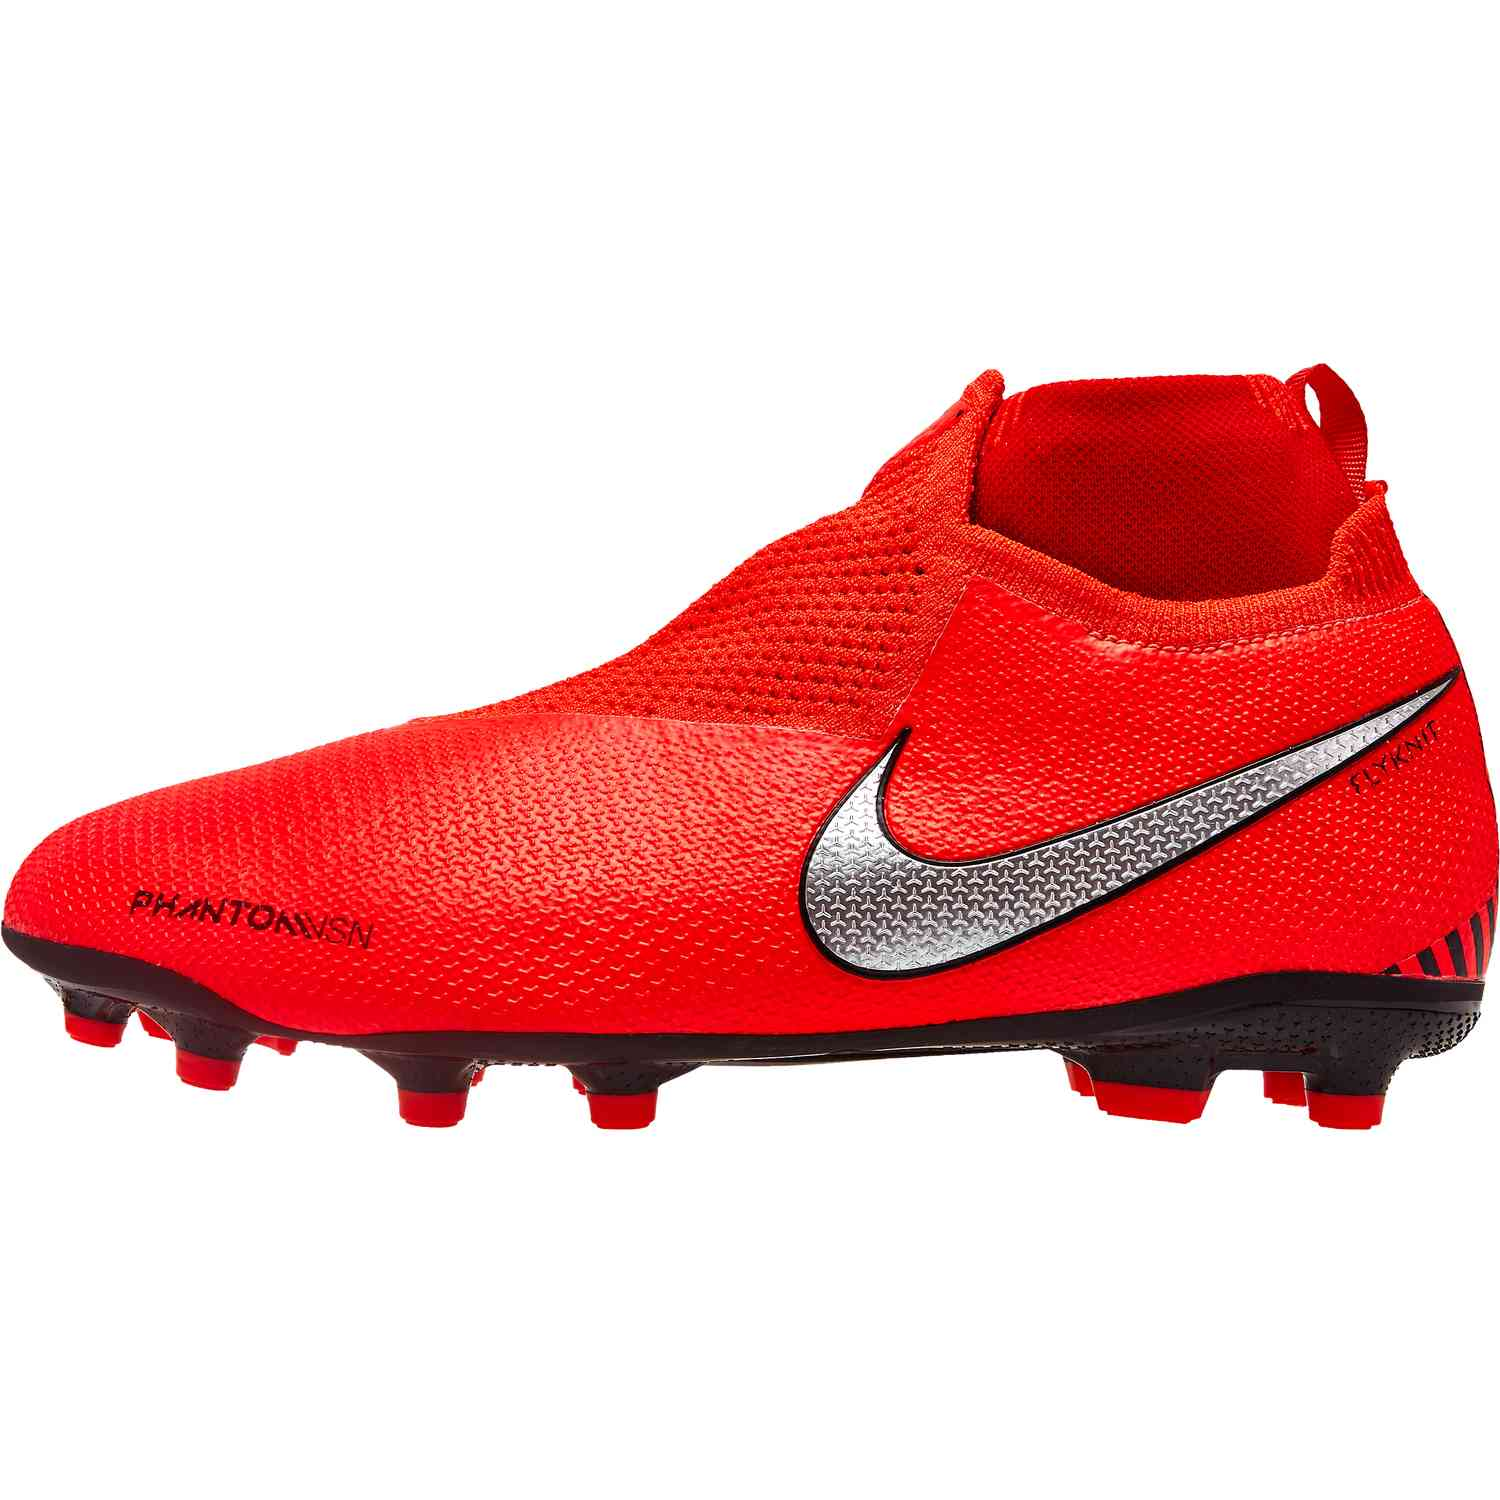 dfb2f357e47 Kids Nike Phantom Vision Elite FG - Game Over - SoccerPro